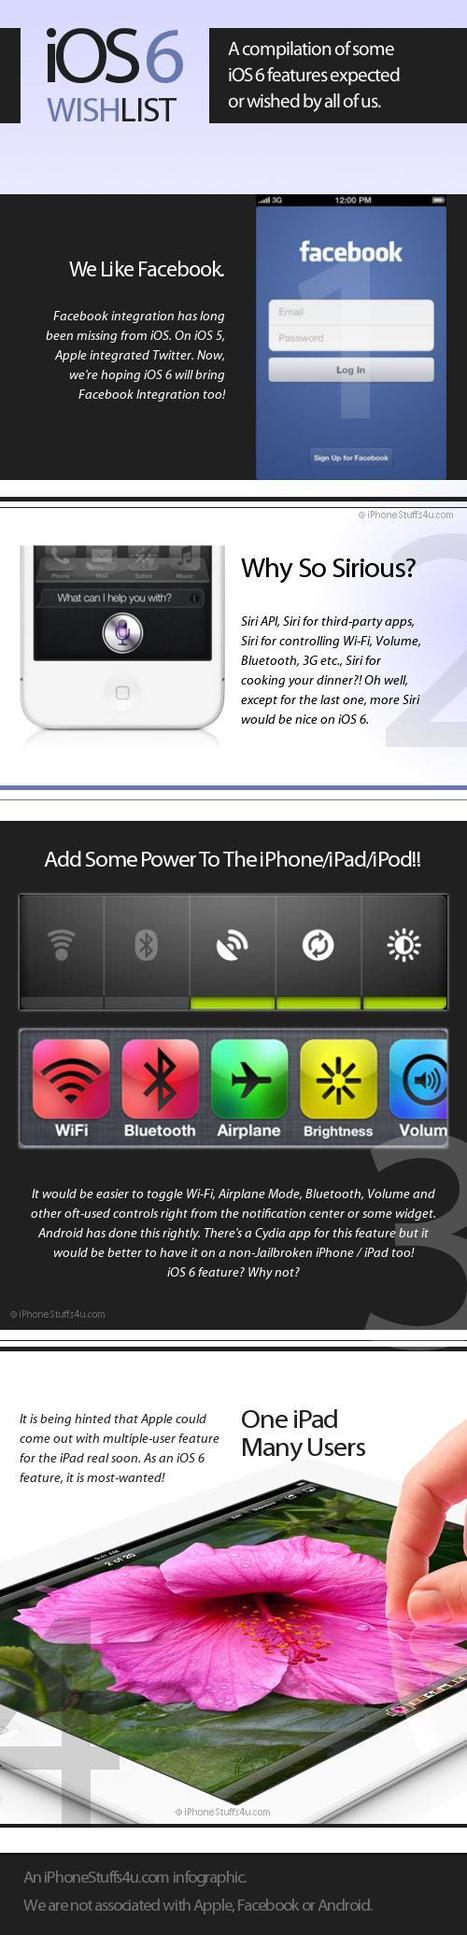 Apple iOS 6 Features for iPhone, iPad, and iPod touch | All Infographics | Hot Technology News | Scoop.it